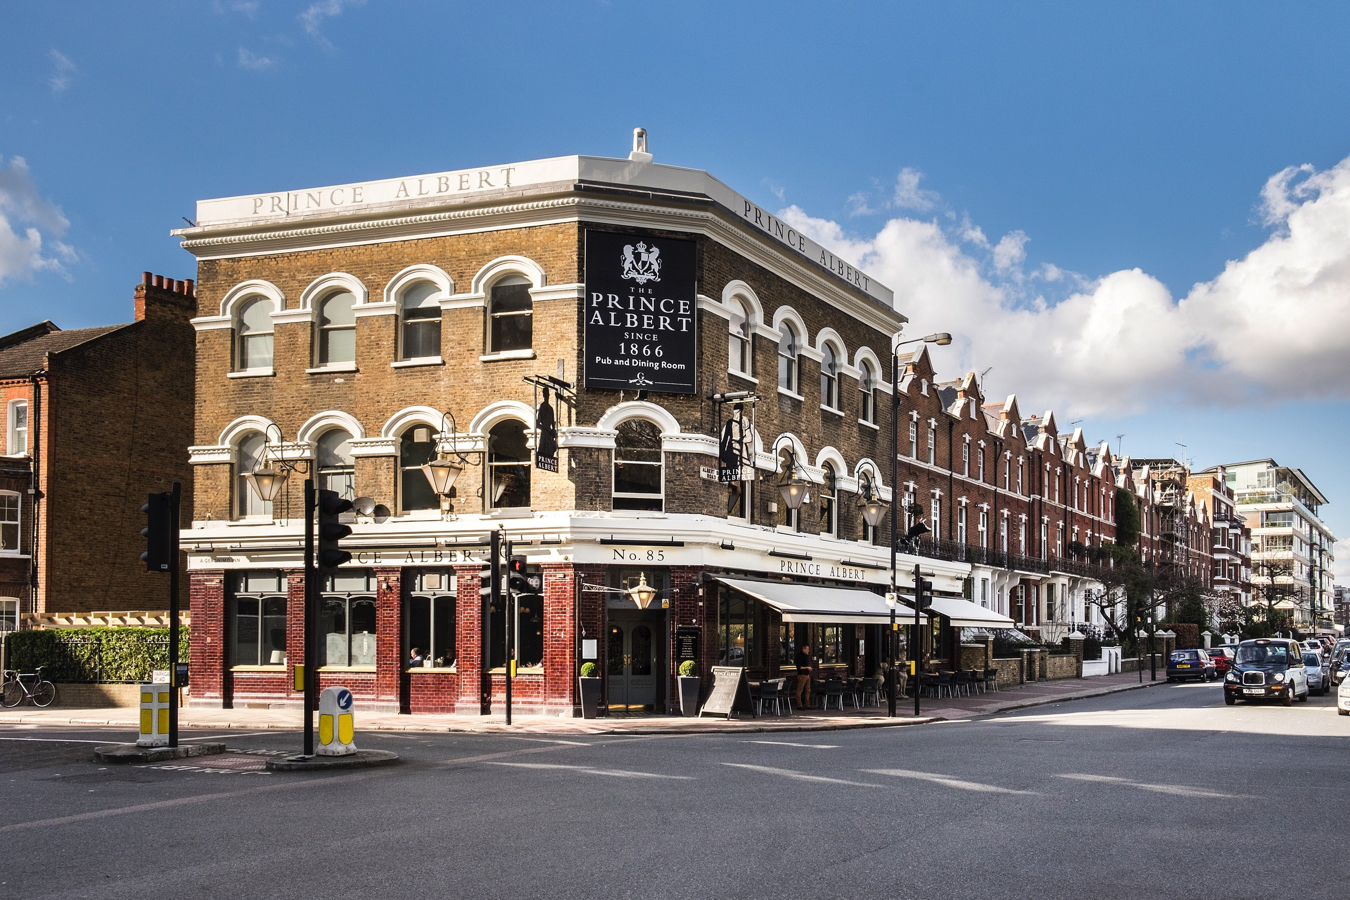 The Prince Albert | Pub and Resturant in Battersea